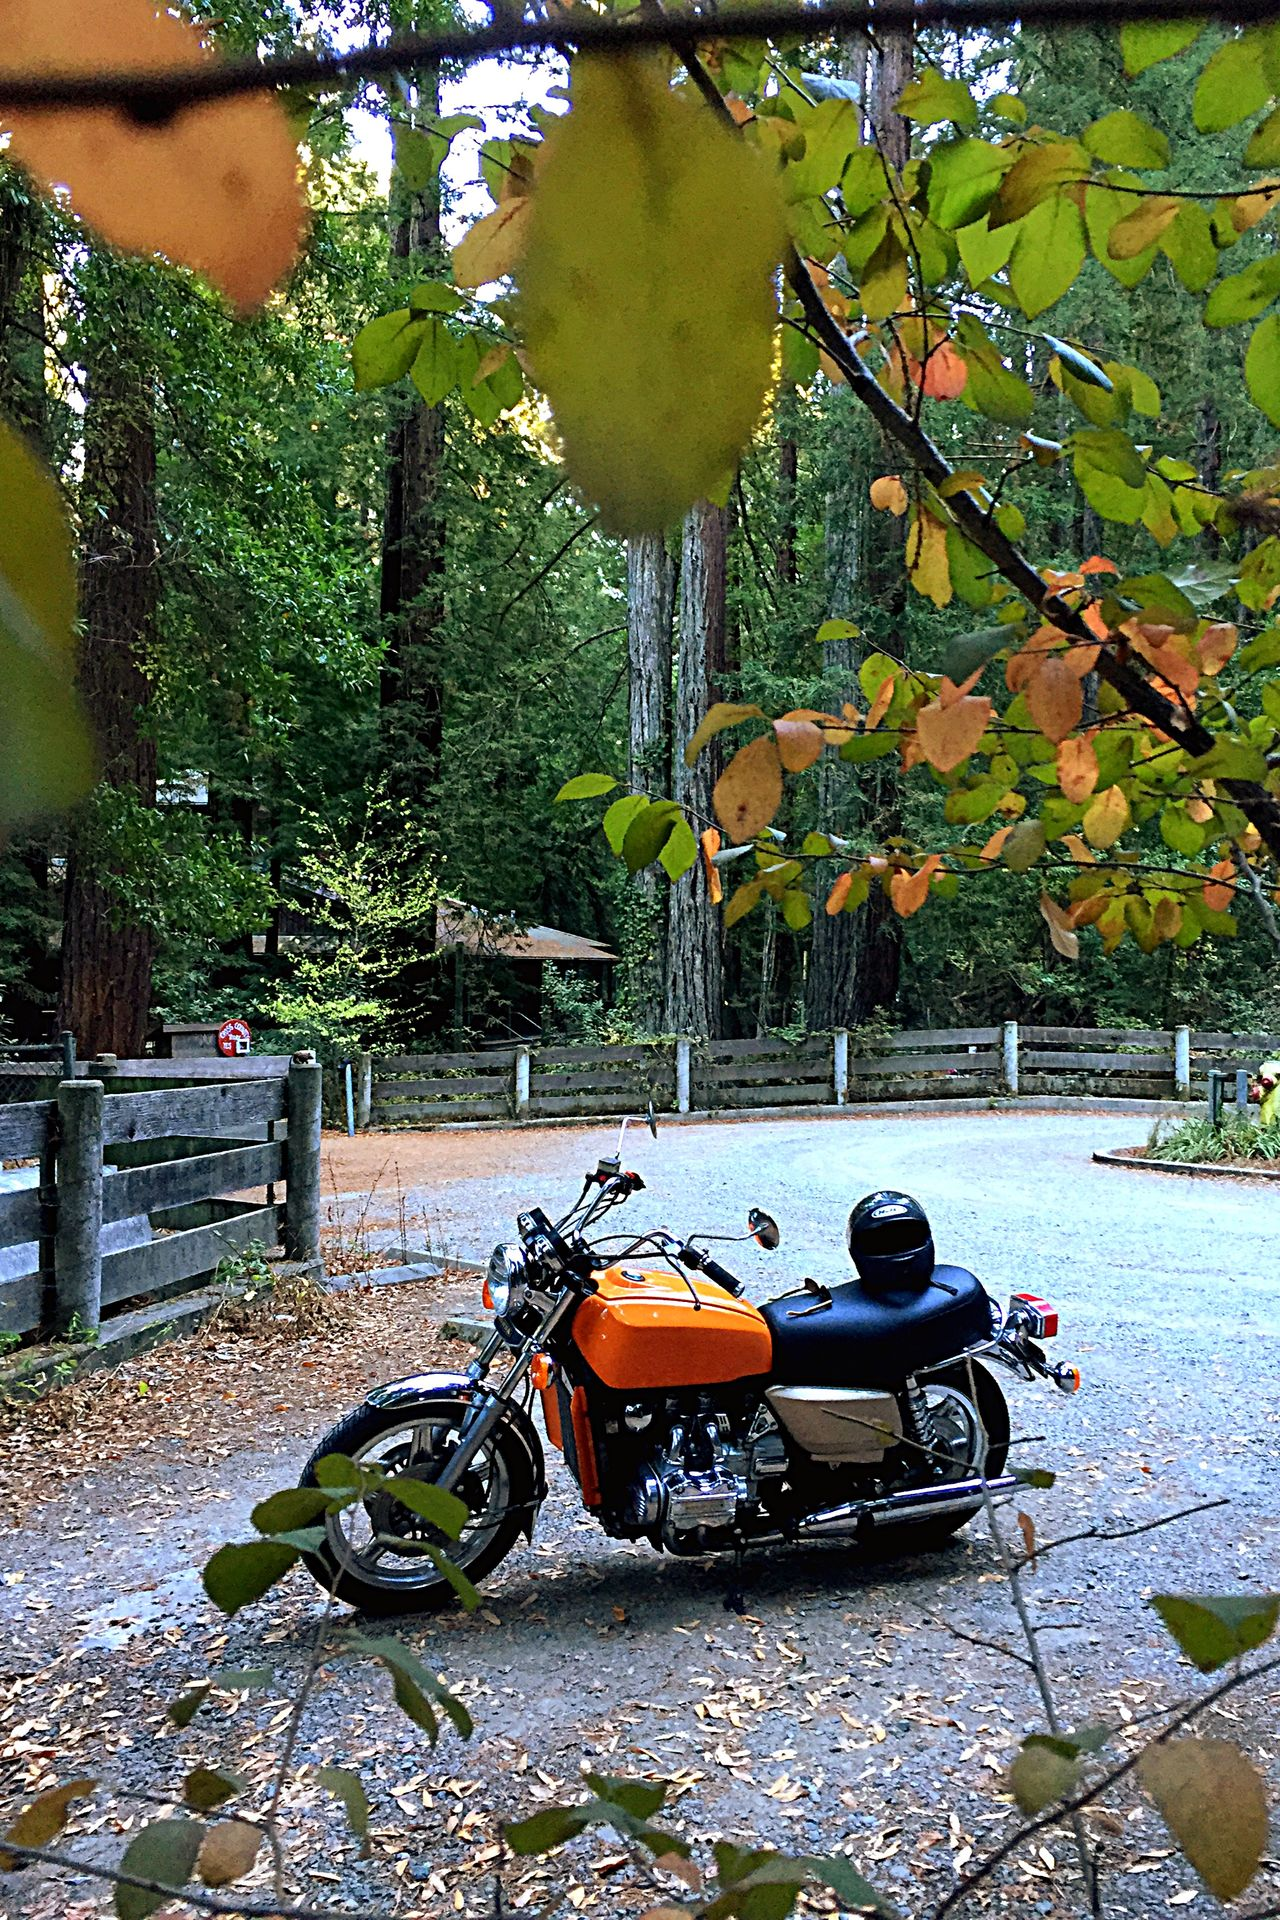 "Had to go pick up the freshly restored 1979 GL1000 today. Because I only have a permit, I ""had to"" drive back roads all the way from Fairfield, Ca... This is Pinehurst road between Moraga and Oakland... It's like a miniature Muir Woods in there and the temp dropped more than ten degrees the moment I entered it..."